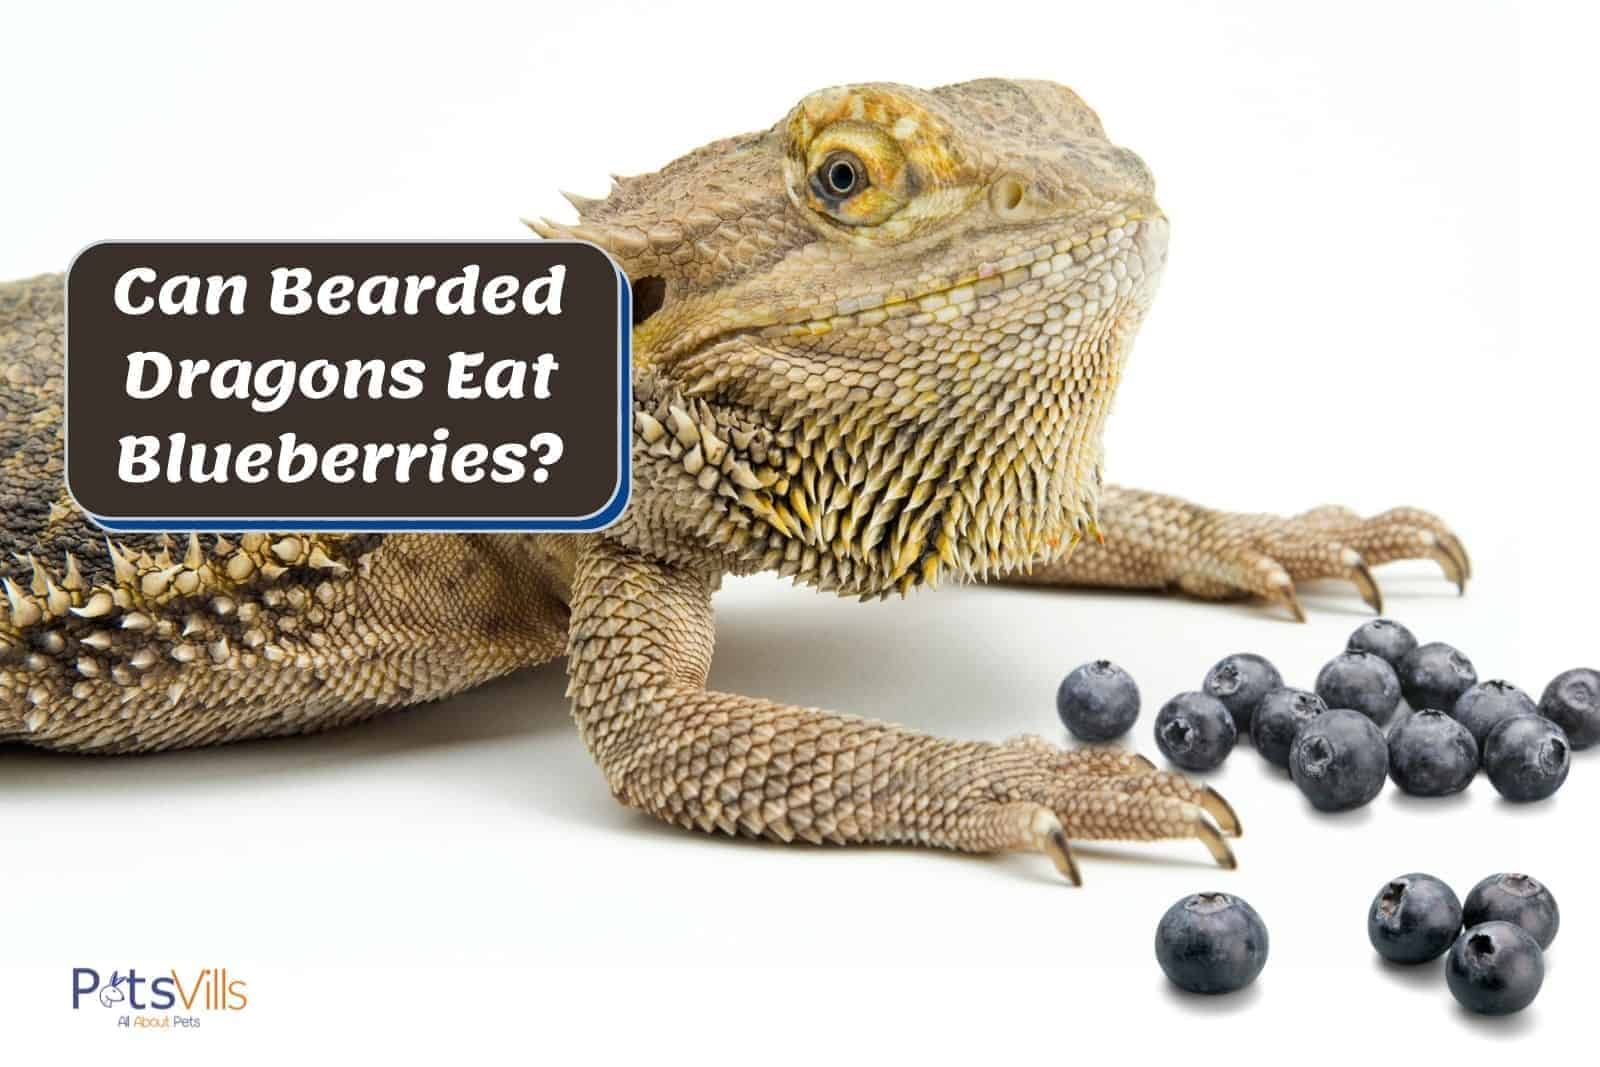 yellow beardie and pieces of blueberries: can bearded dragons eat blueberries?